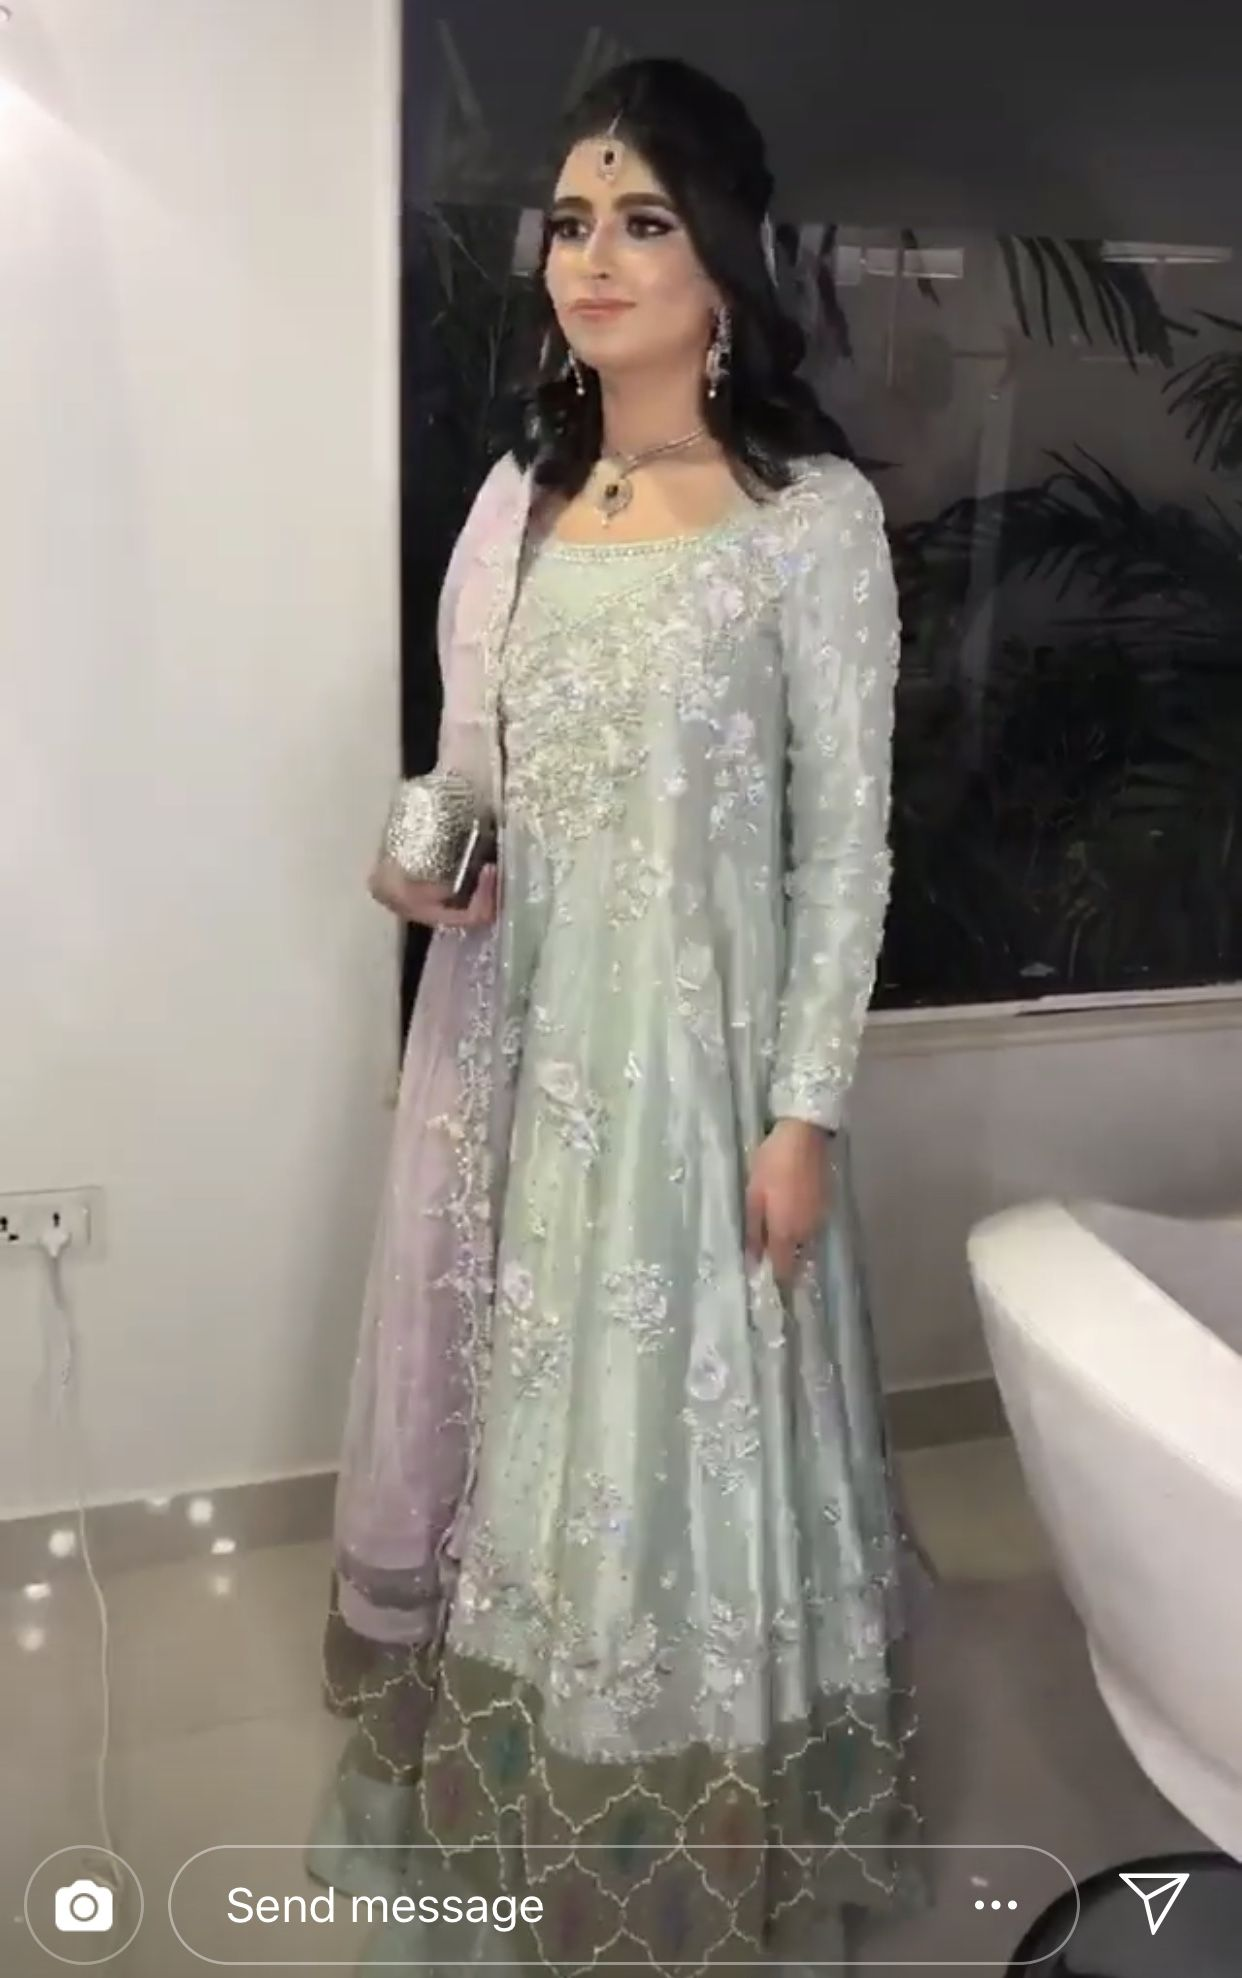 Watch Hijab Engagement Dresses – 27 Beautiful Engagement Dresses for Hijabis video